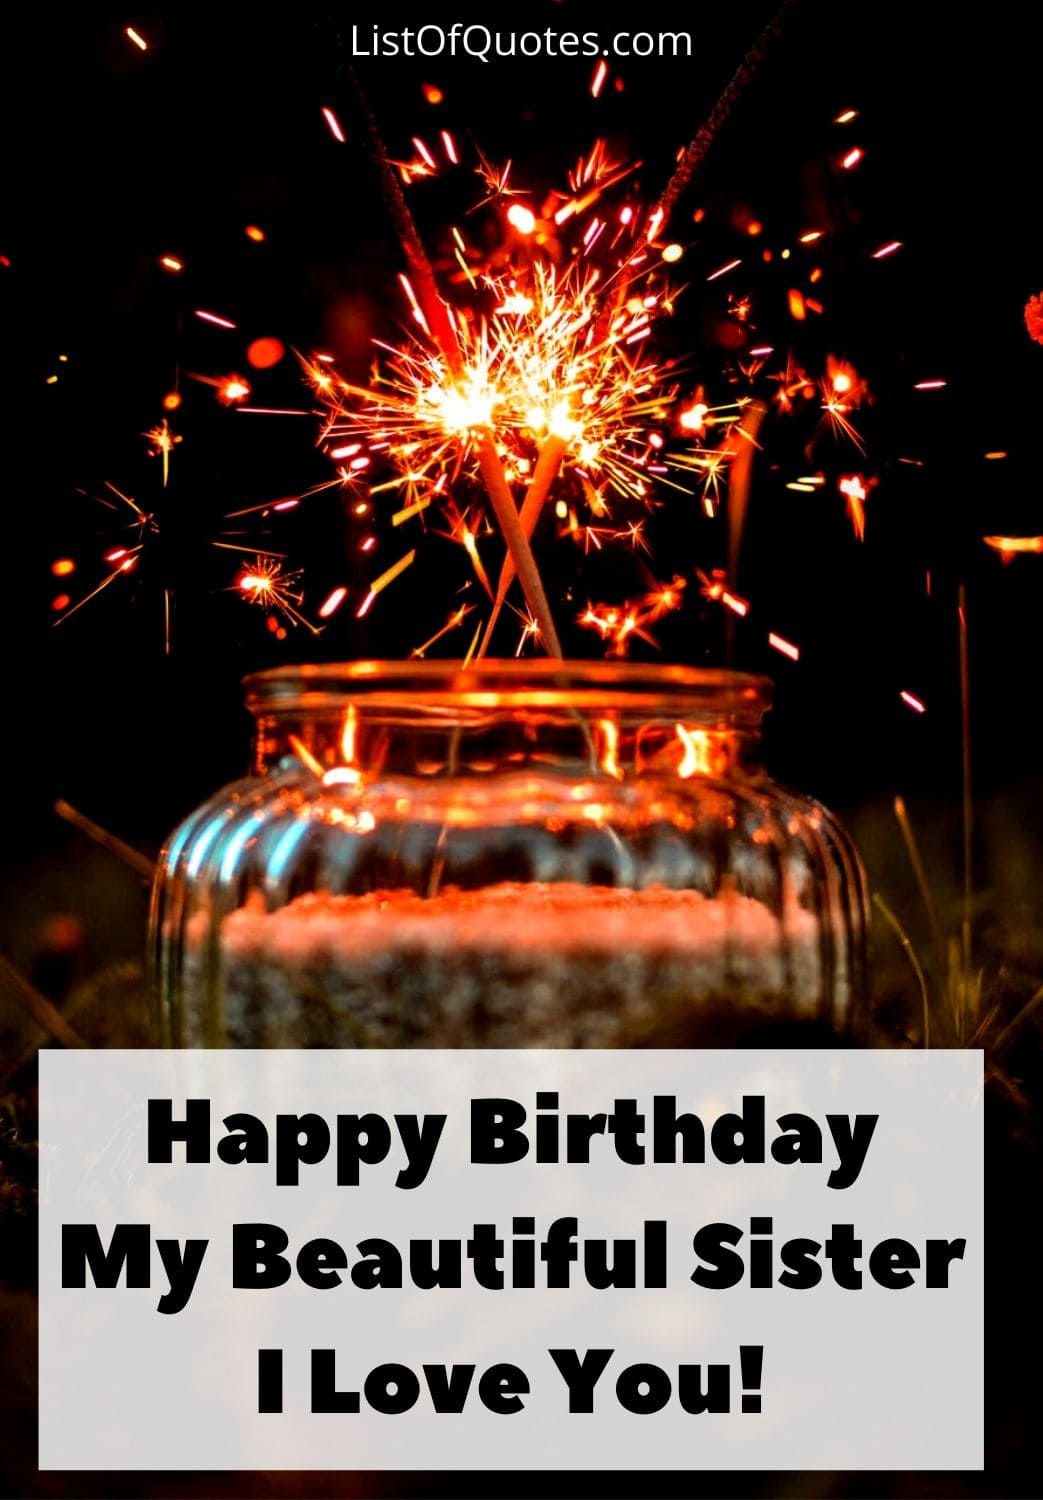 happy birthday quotation funny images for sisters